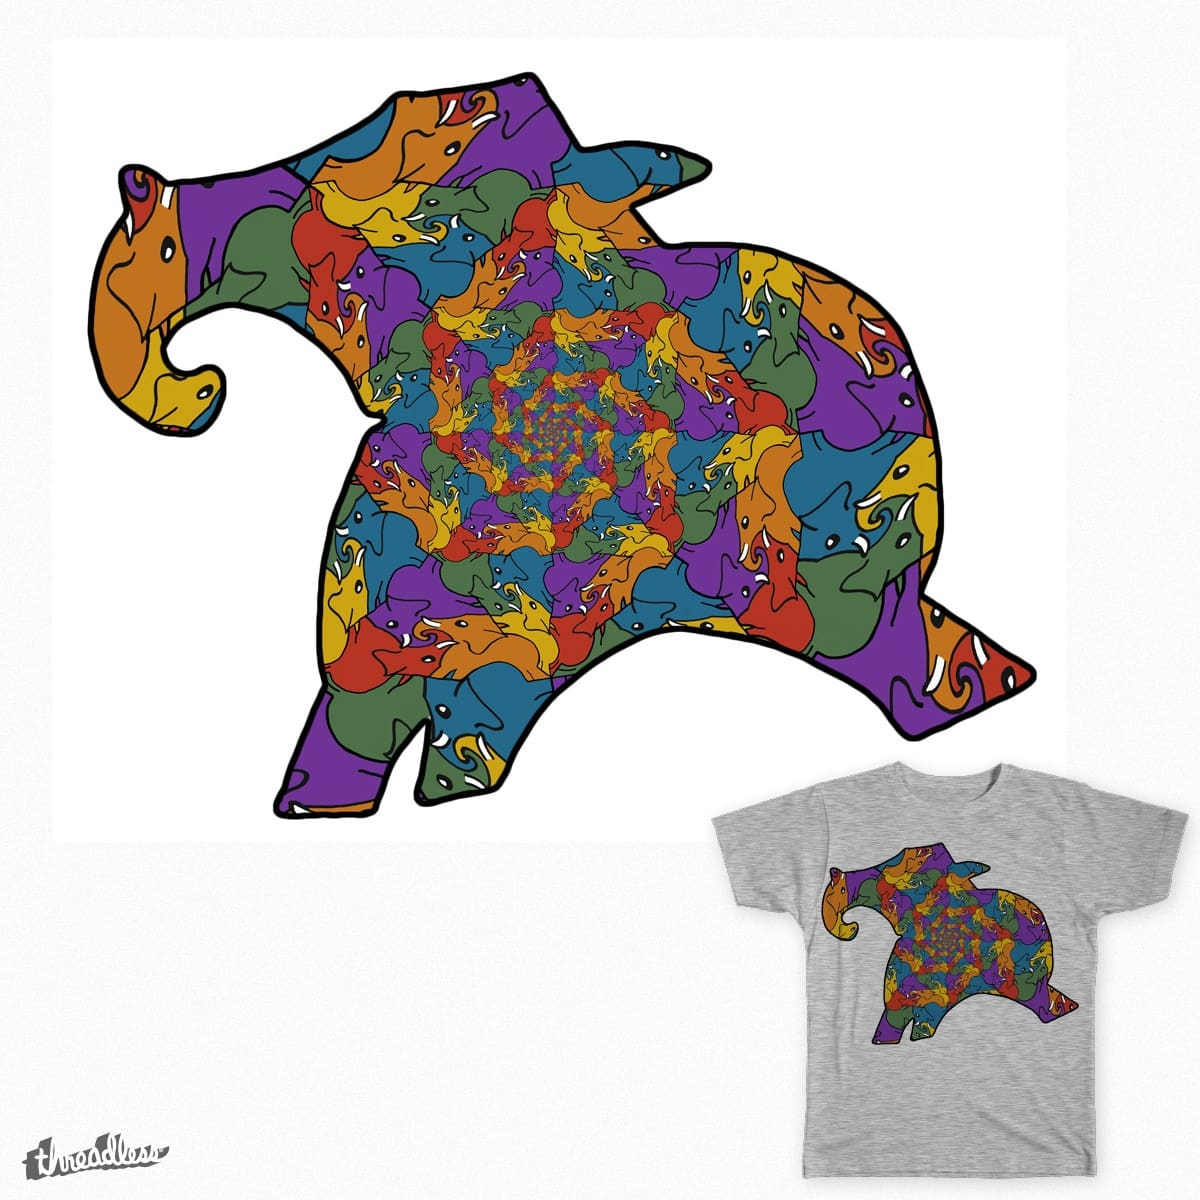 Tessellephants by thegnome54 on Threadless